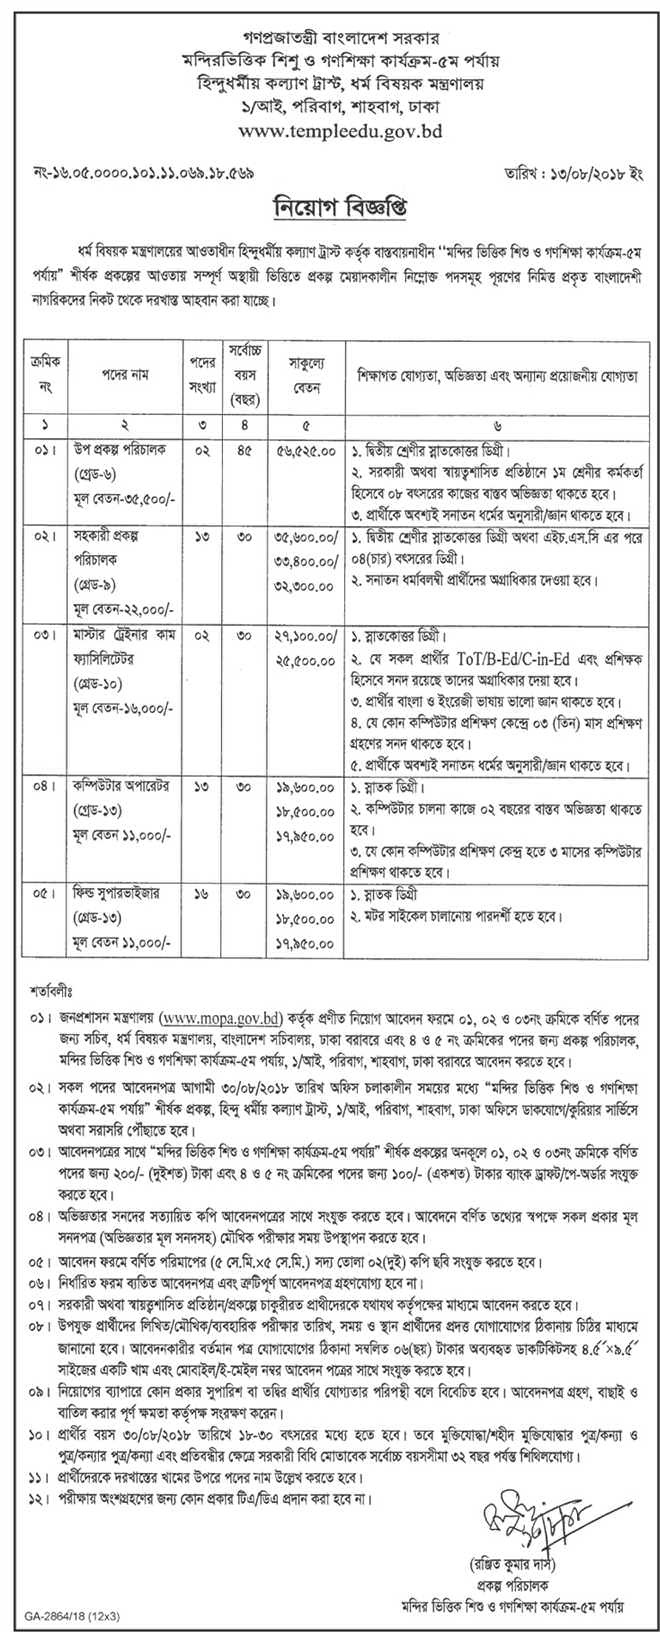 Department of Immigration and Passports Office Job Circular 2018